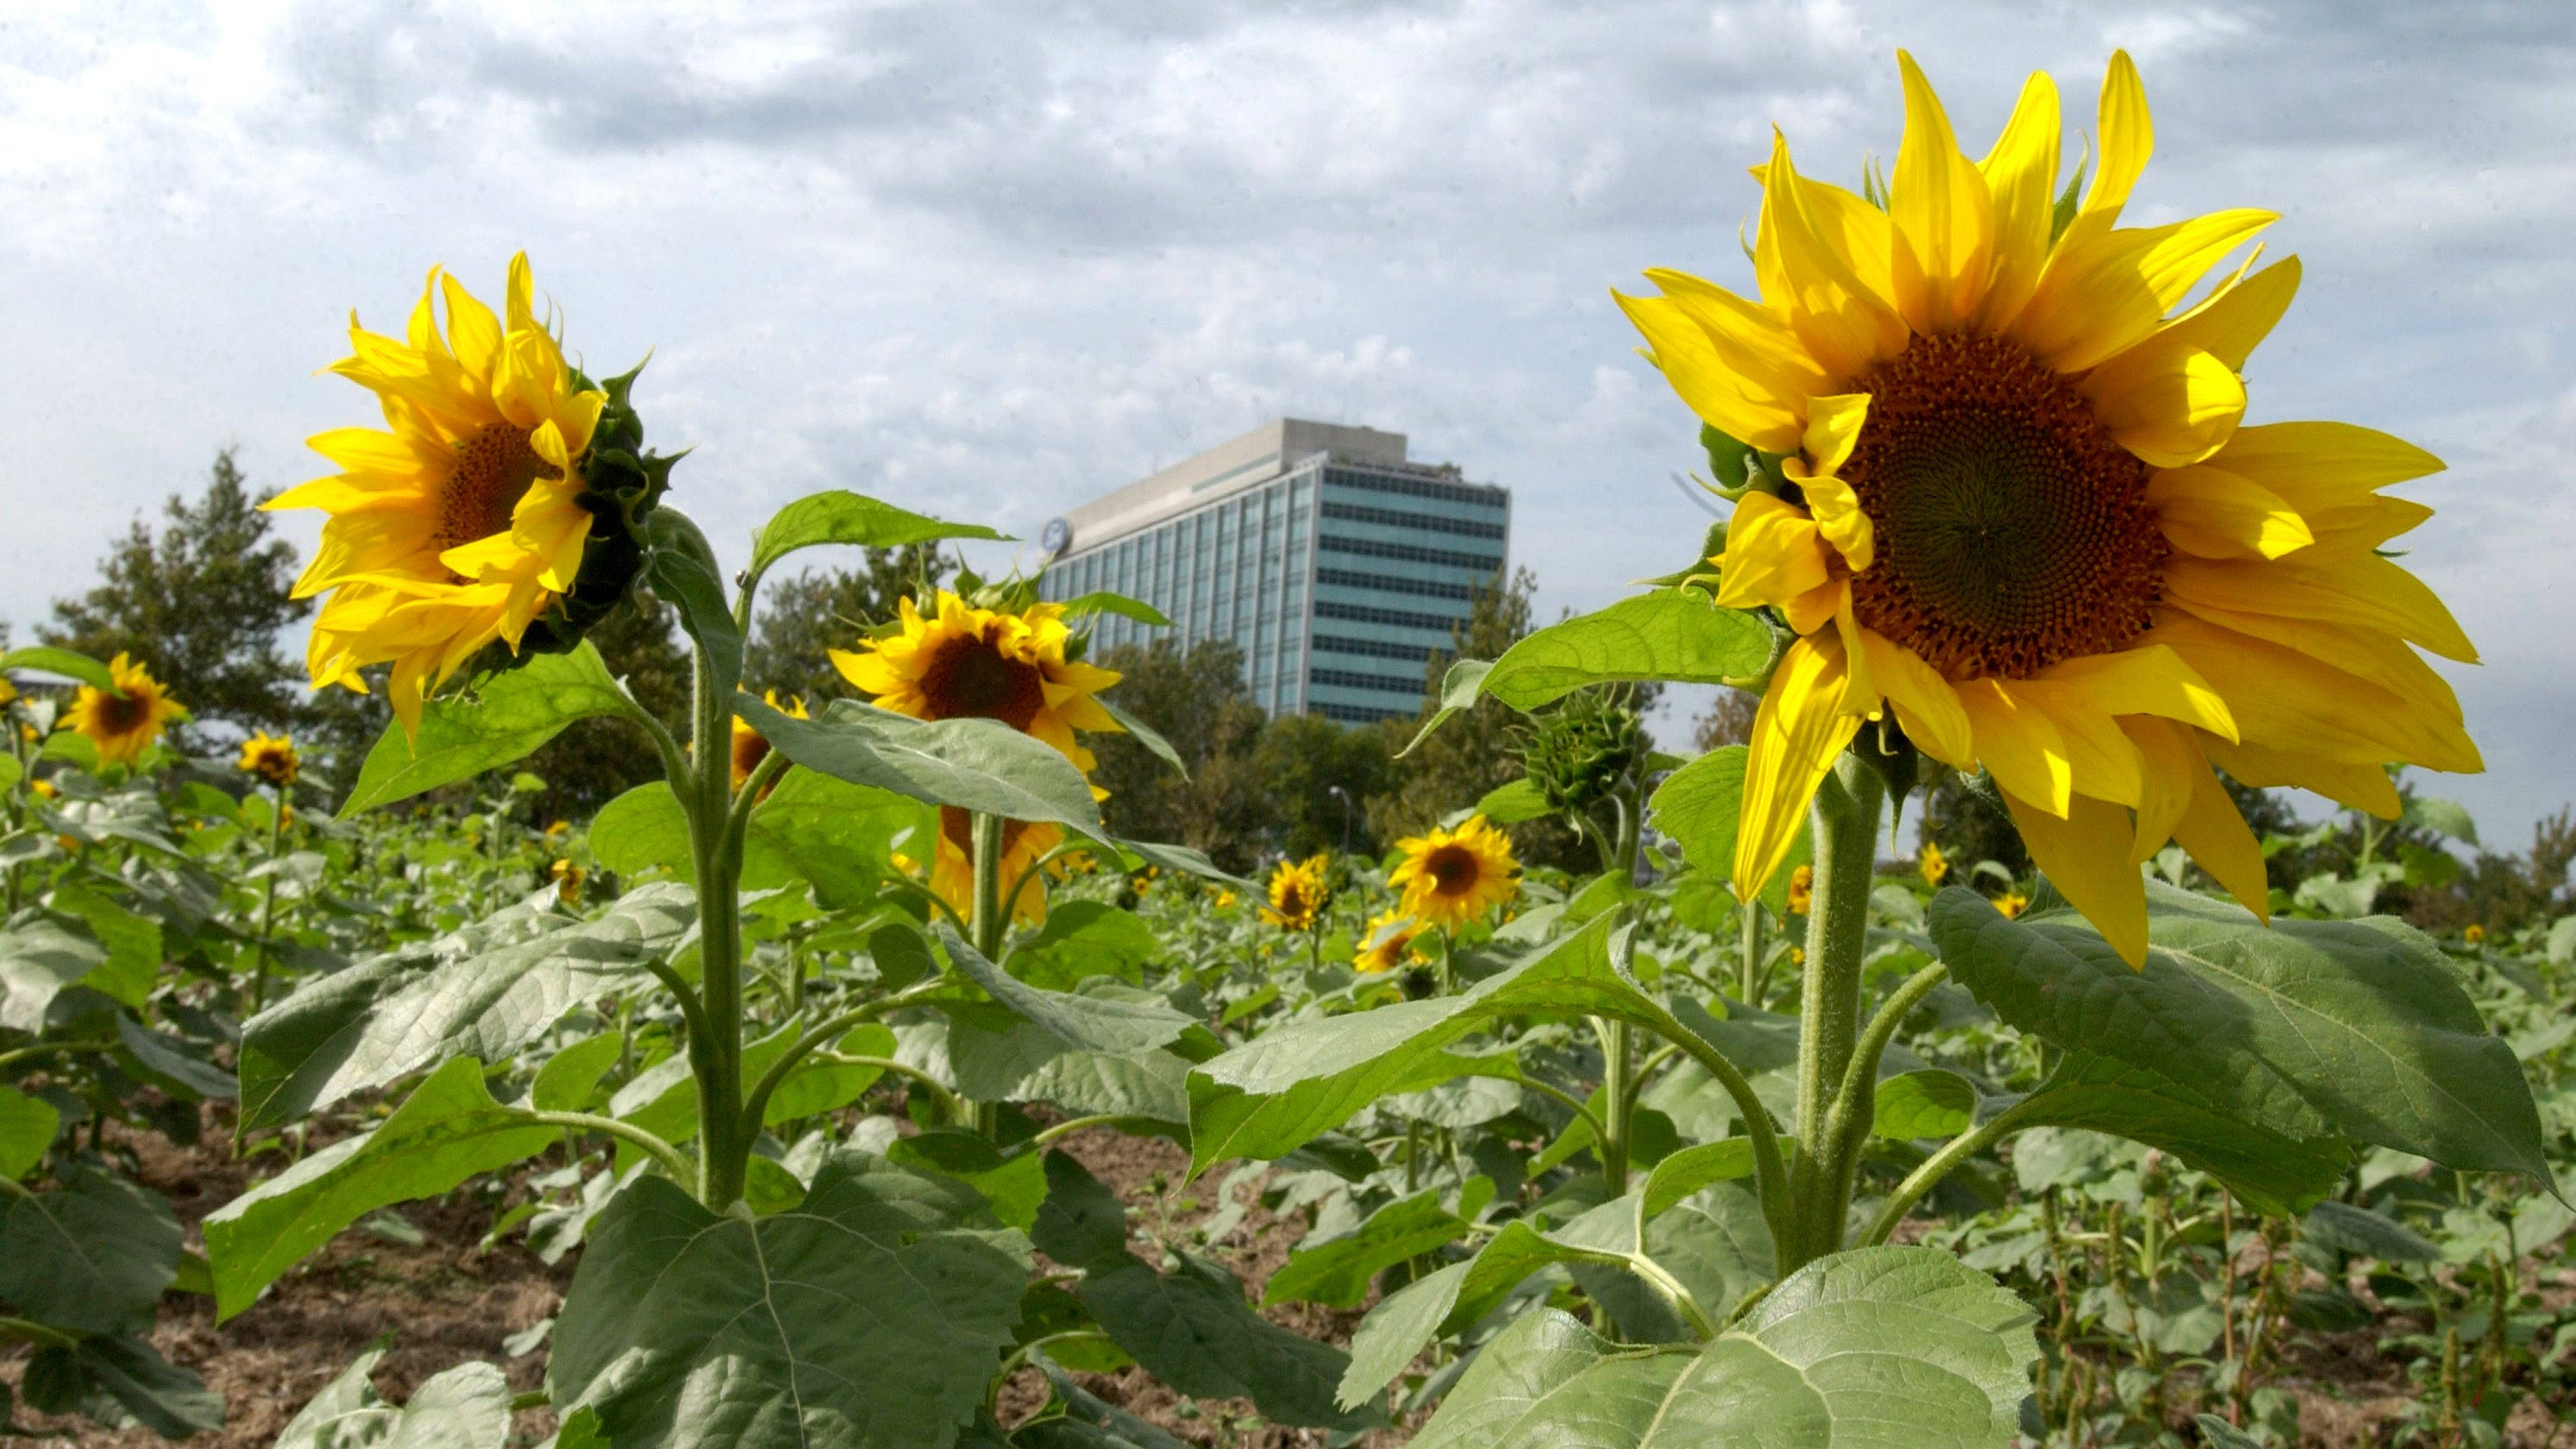 bill ford s tie to puerto rico visible through sunflowers